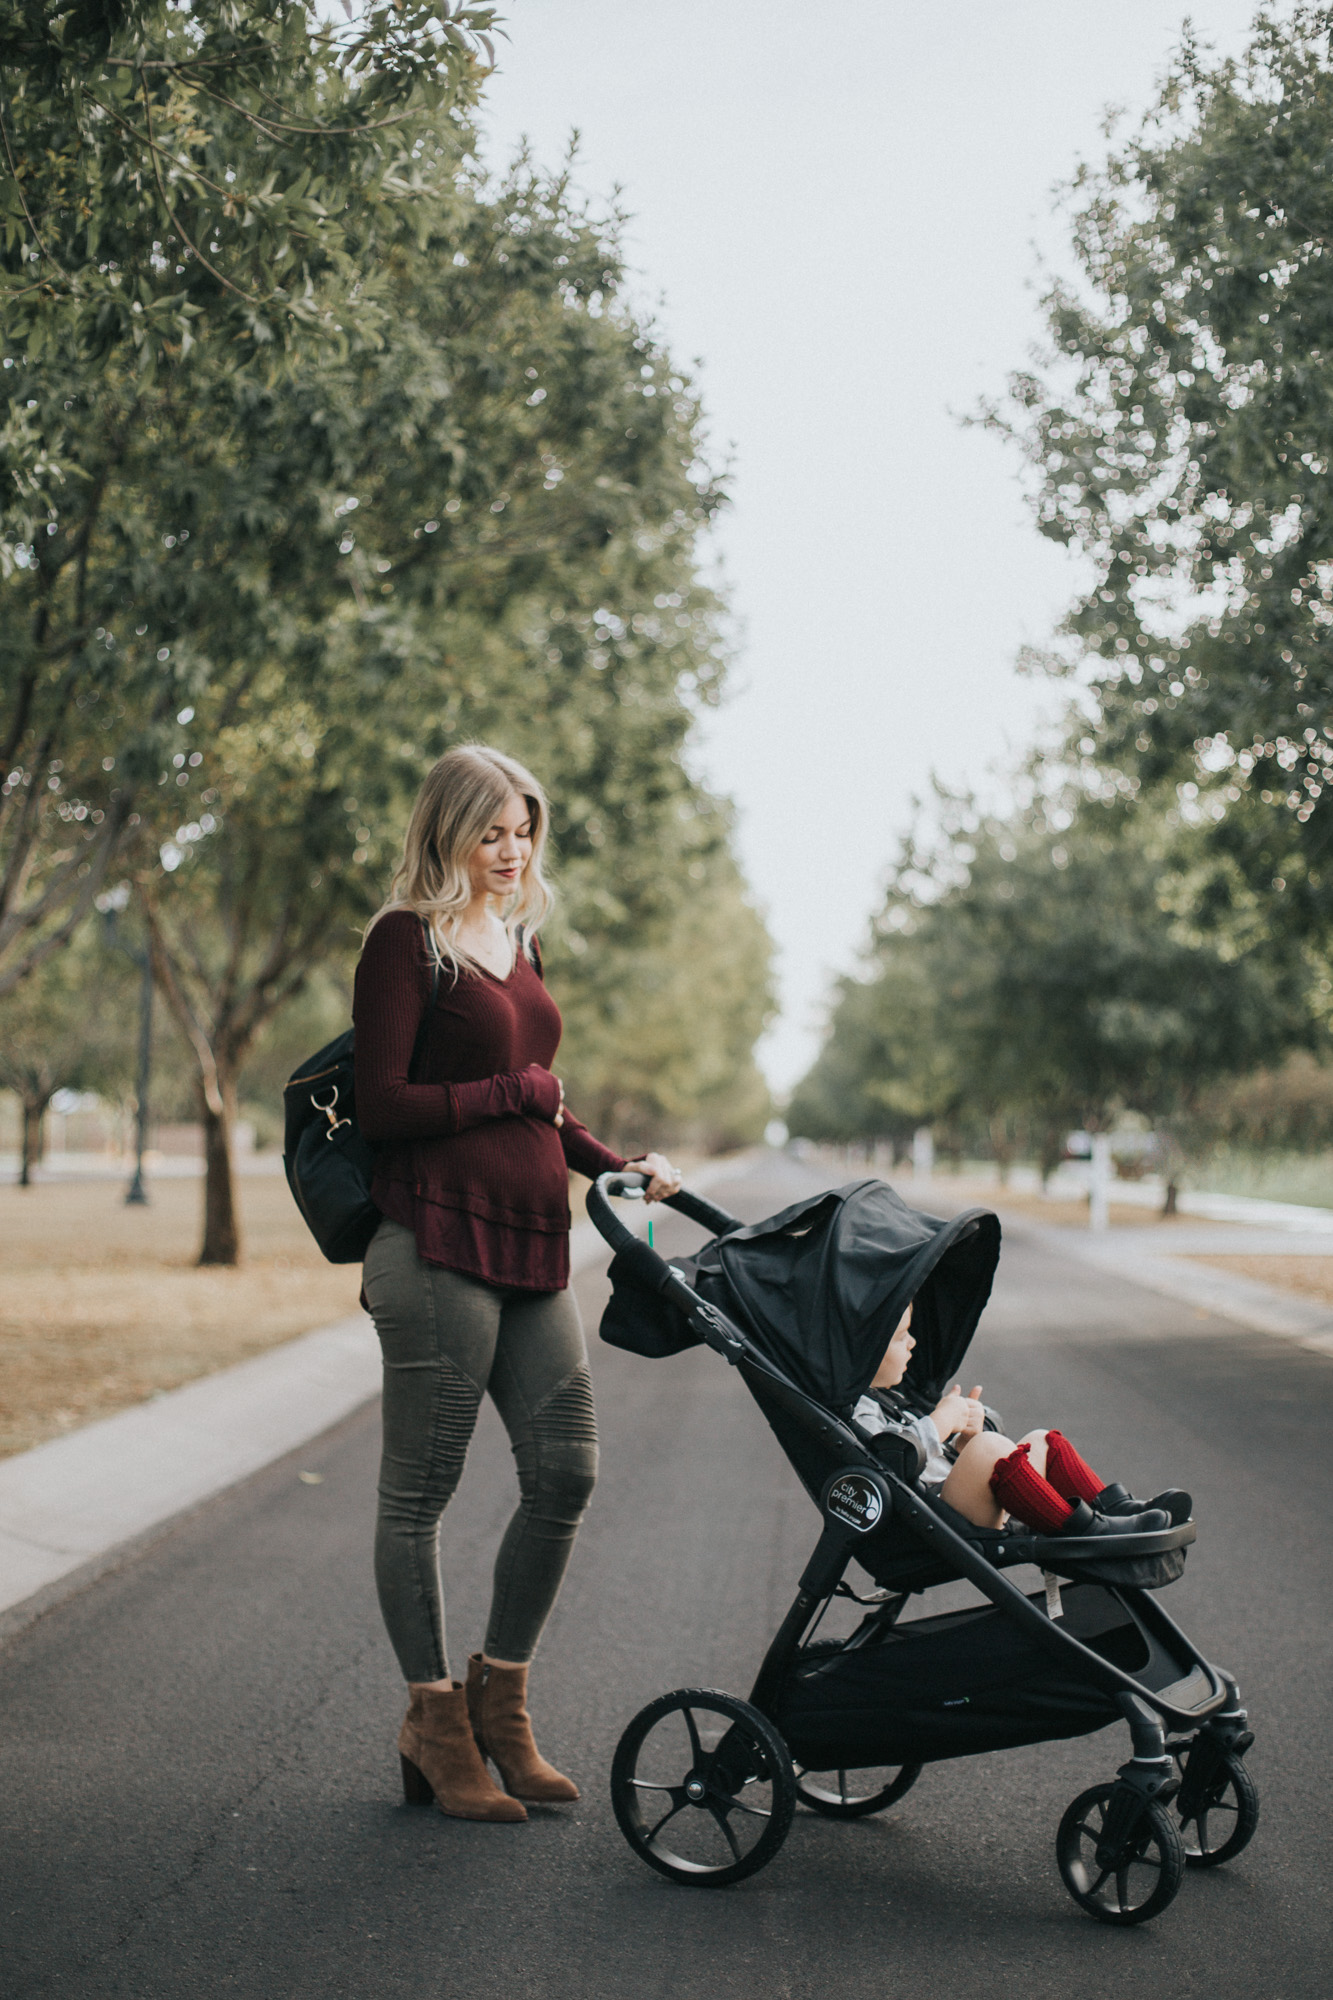 City Jogger Prams Baby Jogger City Premier Stroller Review From A Pregnant